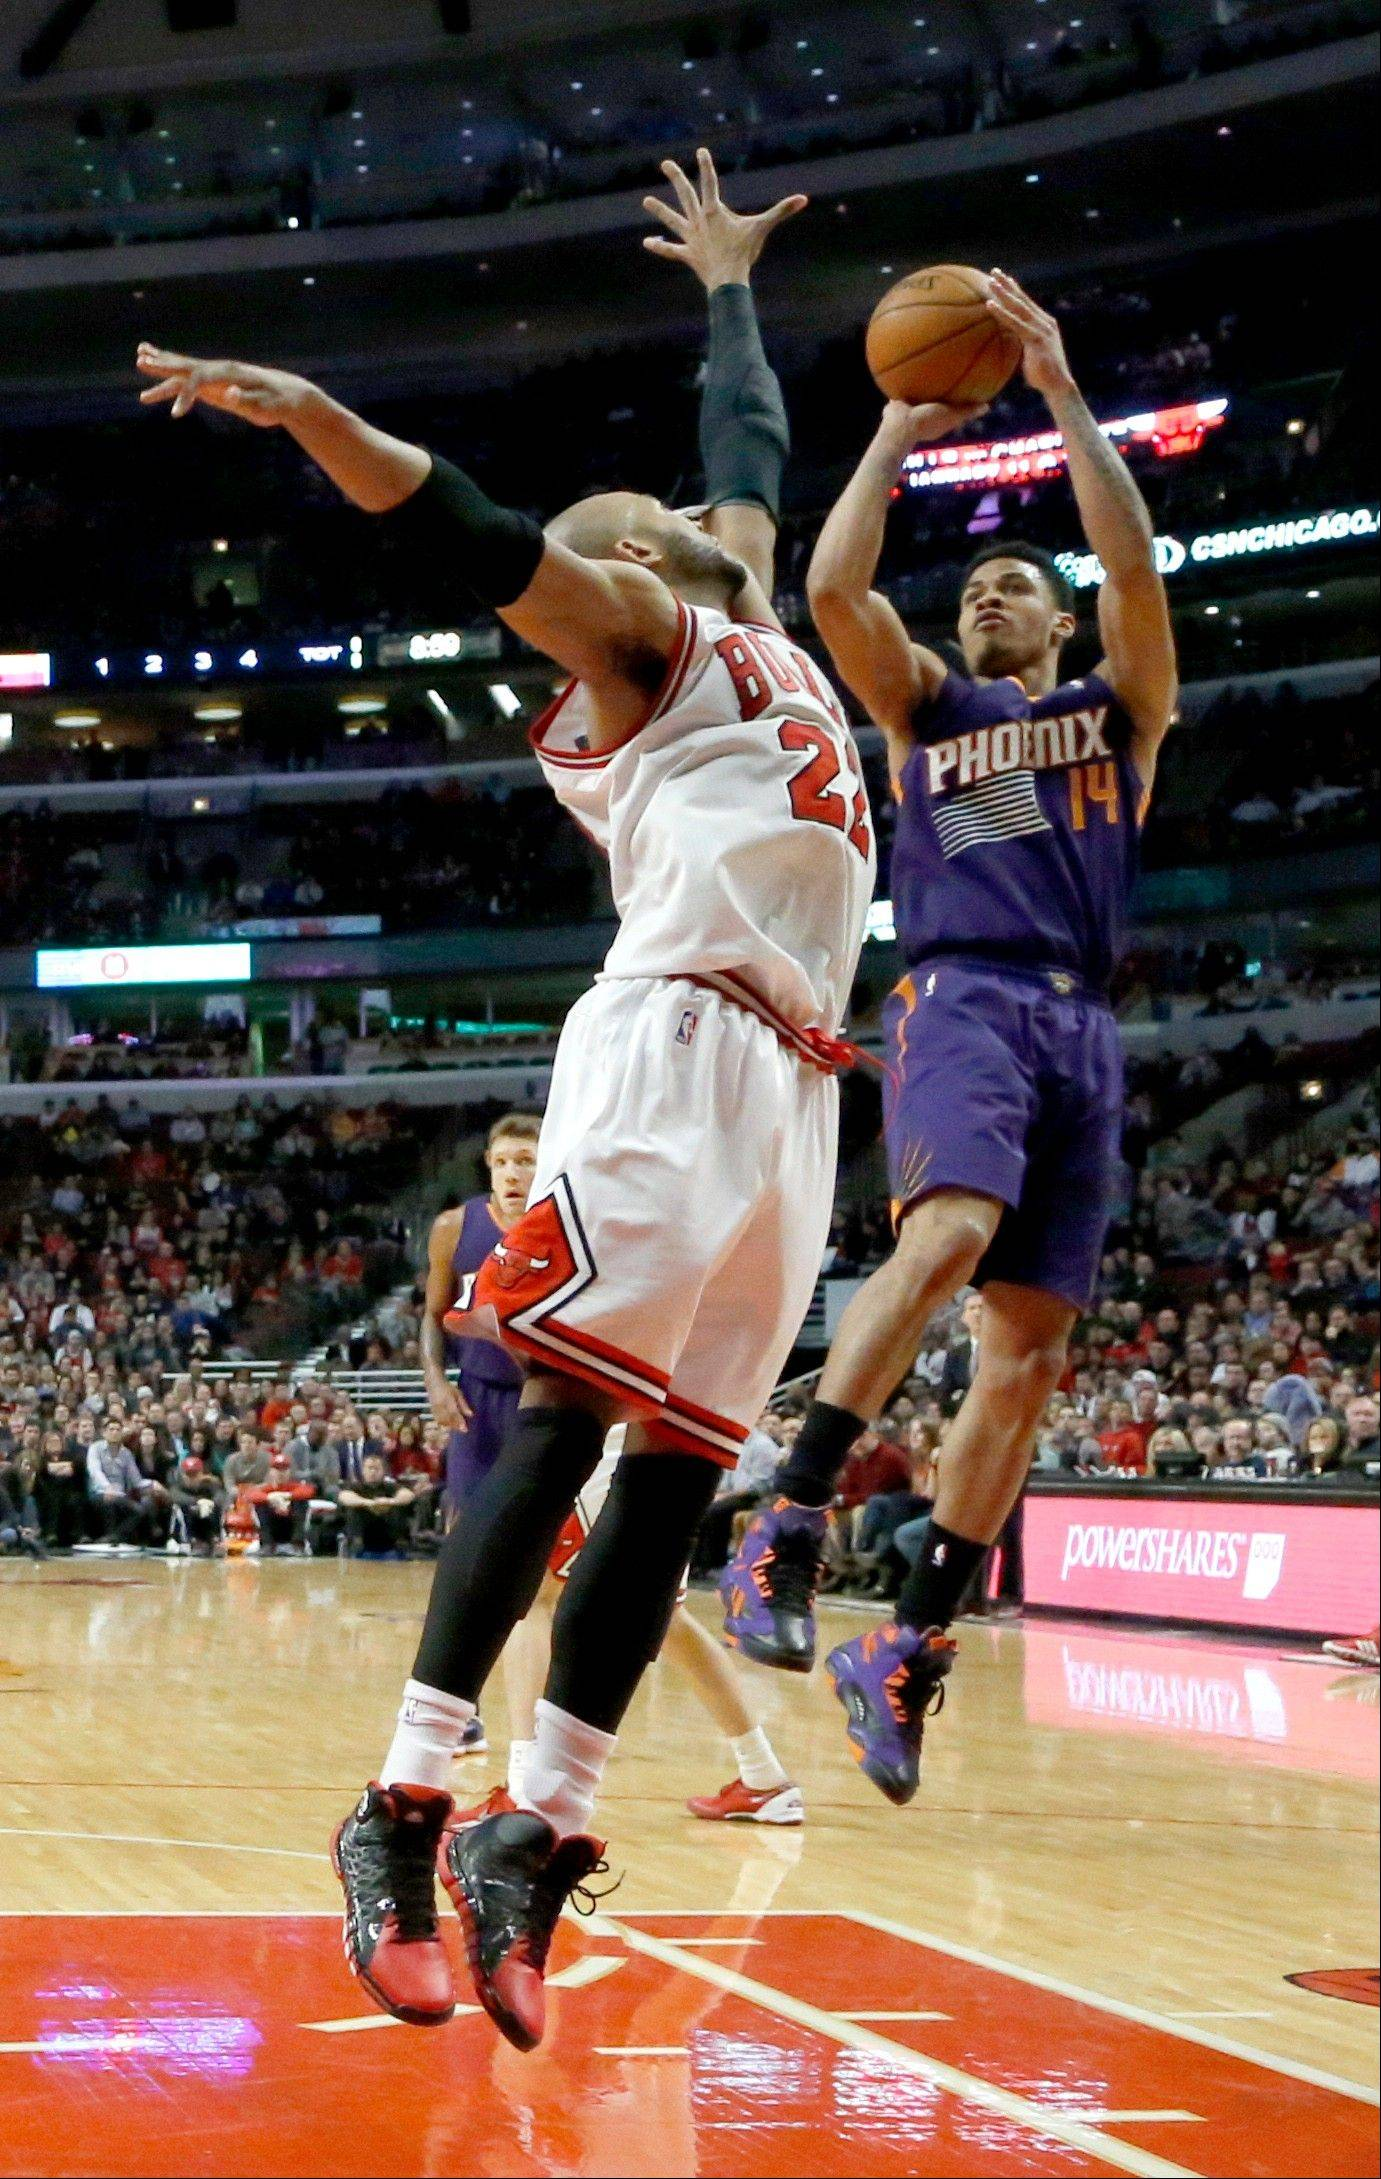 The Bulls' Taj Gibson goes up to defend a shot by the Suns' Gerald Green on Tuesday night at the United Center. The Bulls won 92-87.